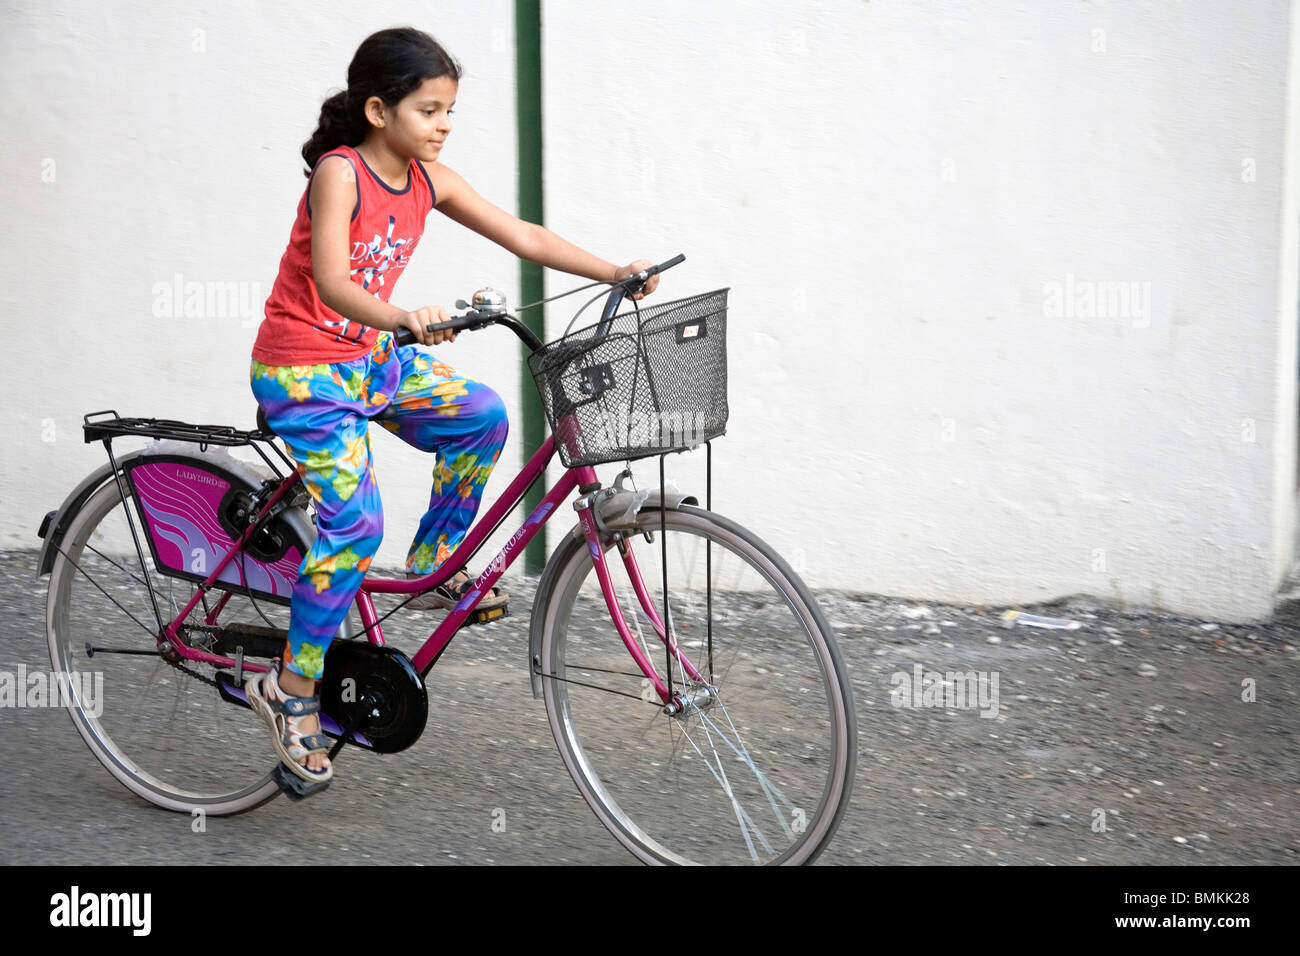 girl riding bicycle india